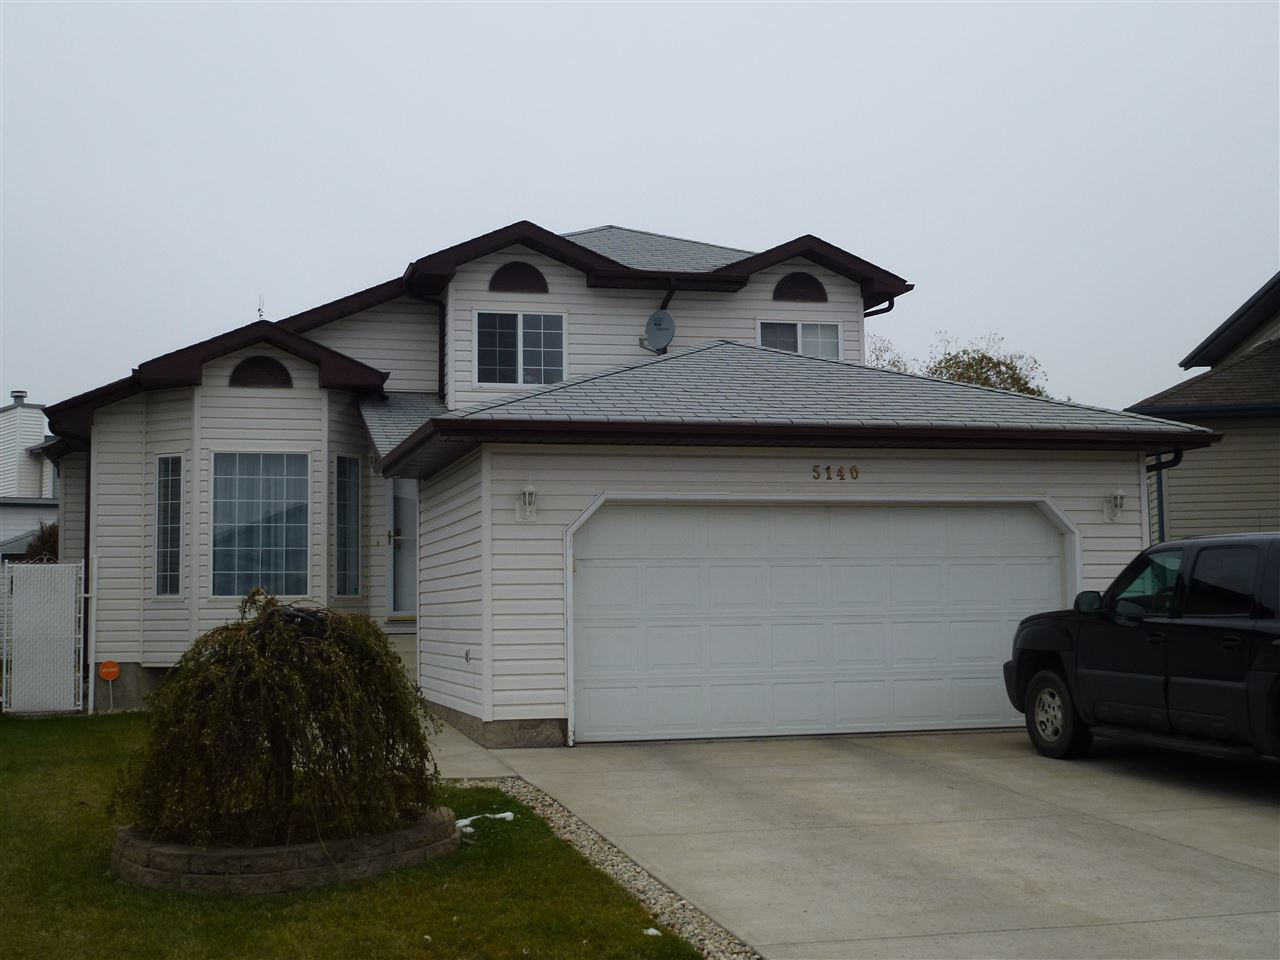 Main Photo: 5140 152A Avenue in Edmonton: Zone 02 House for sale : MLS(r) # E4042521